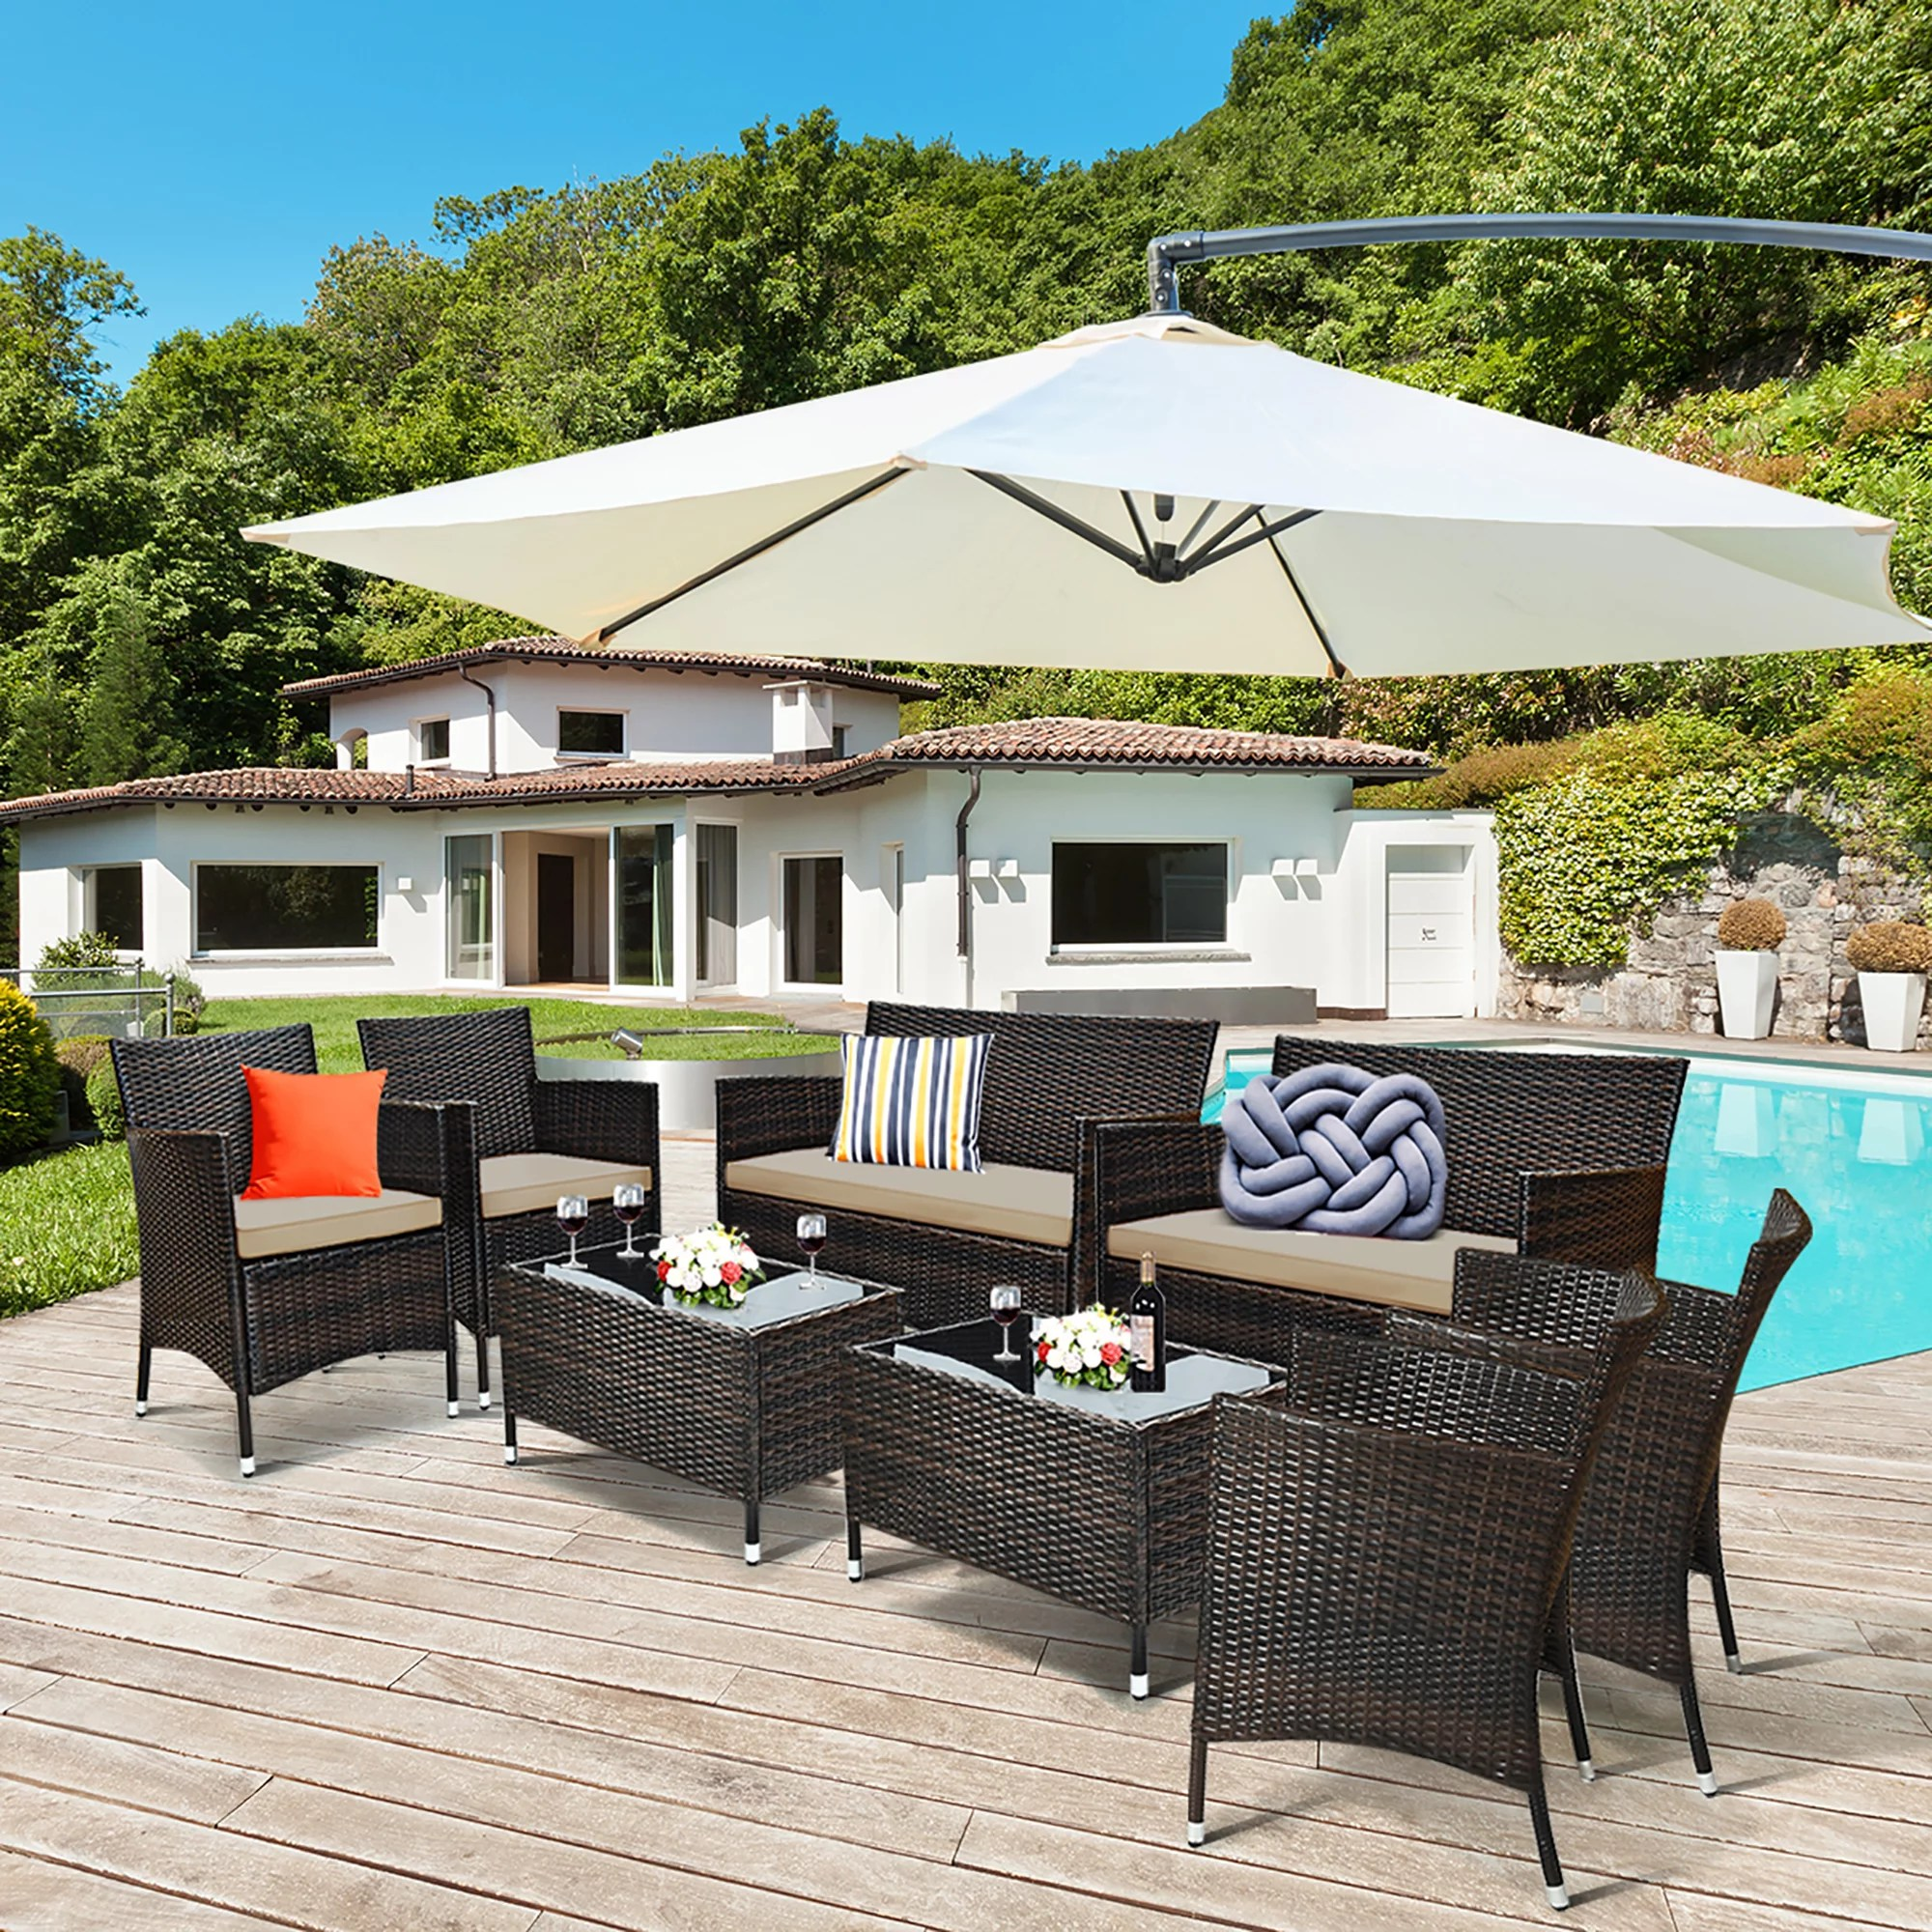 costway 8pcs rattan patio furniture set cushioned sofa chair coffee table red brown turquoise walmart com